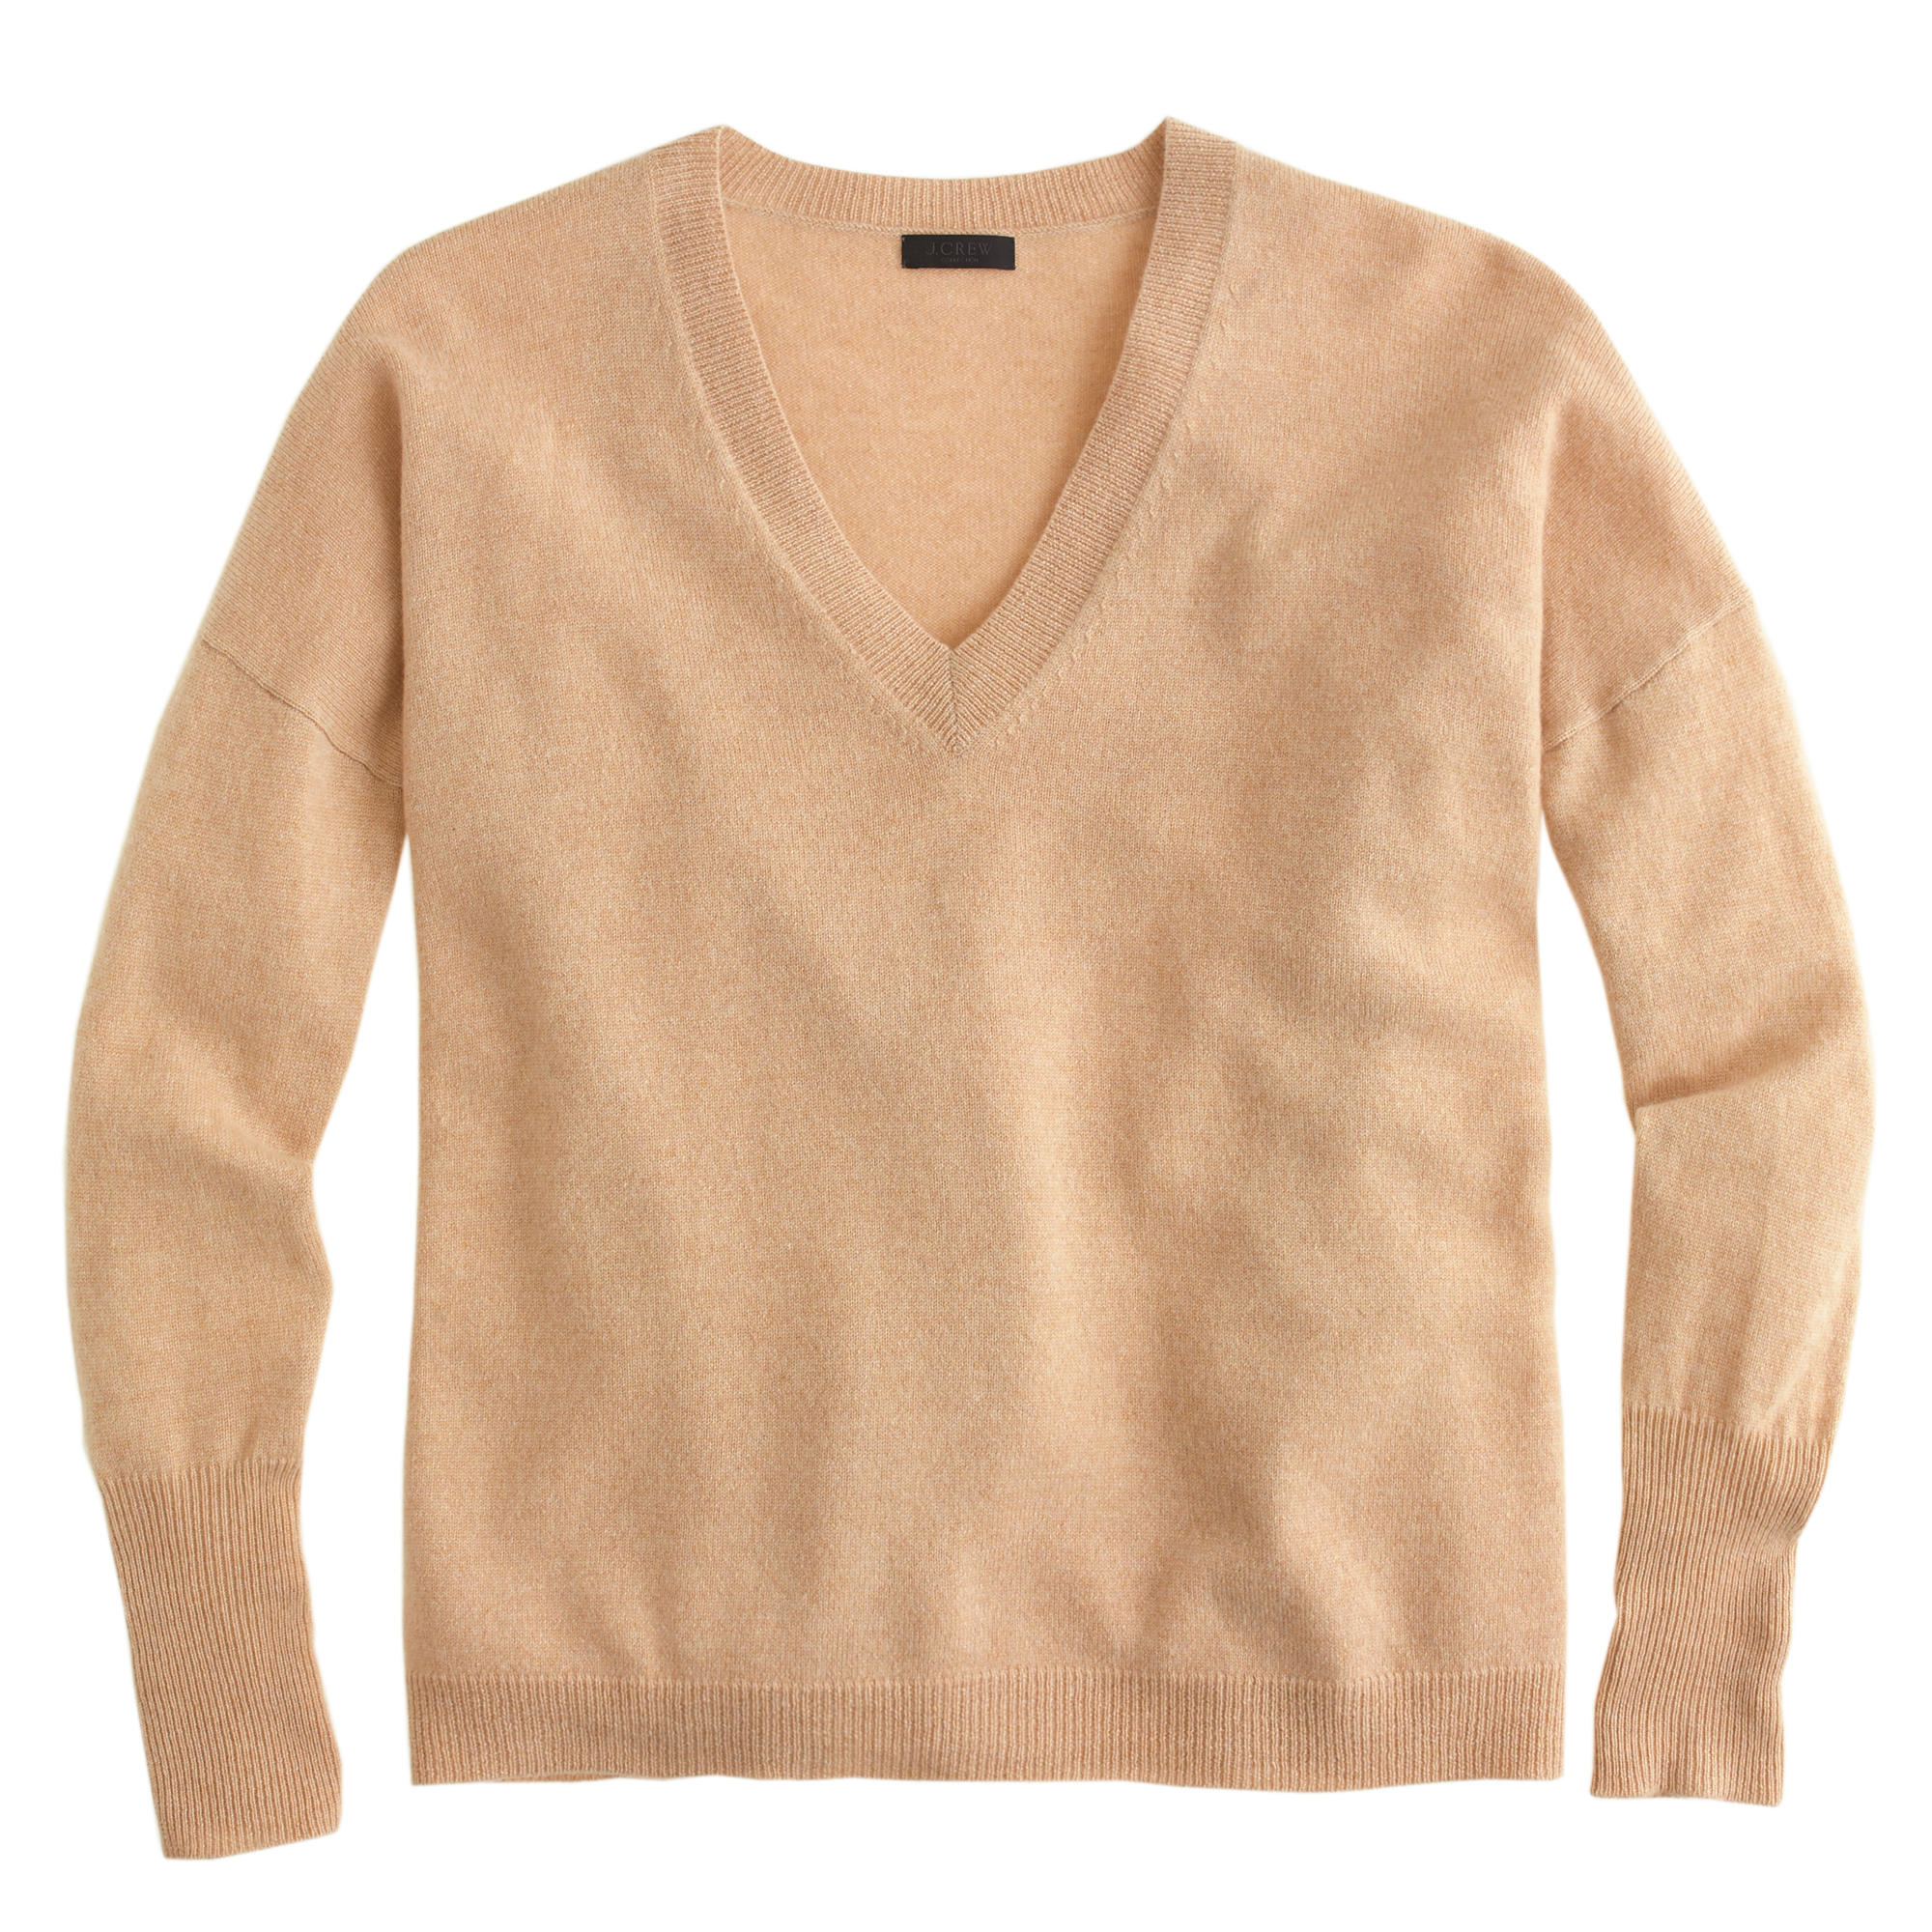 J.crew Collection Cashmere Boyfriend V-Neck Sweater in Natural | Lyst